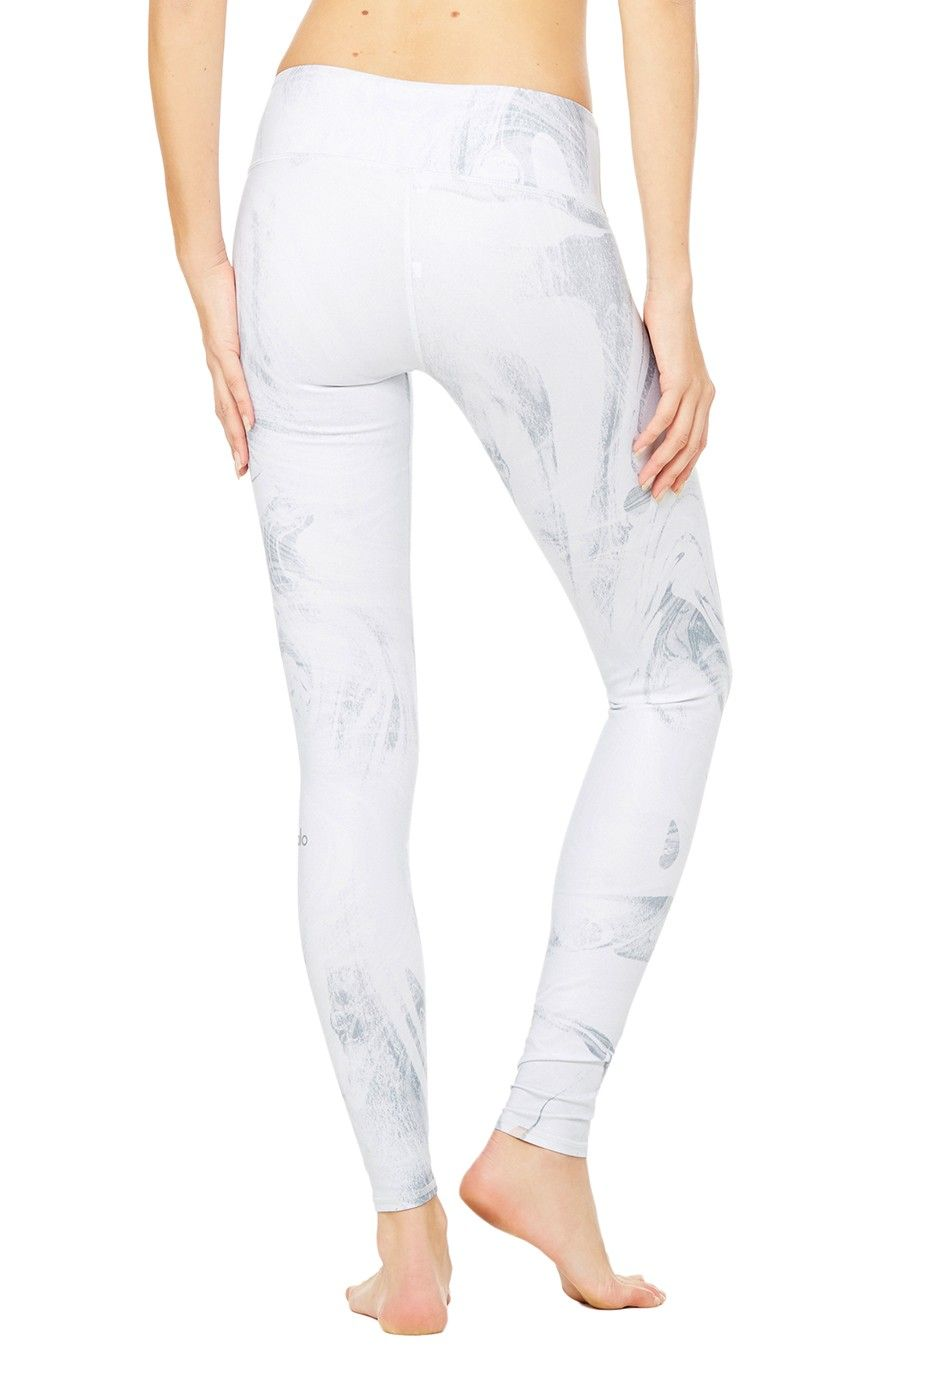 9394f1900207be Airbrush Legging - White Marble Glossy - Airbrush - Collections at ALO Yoga